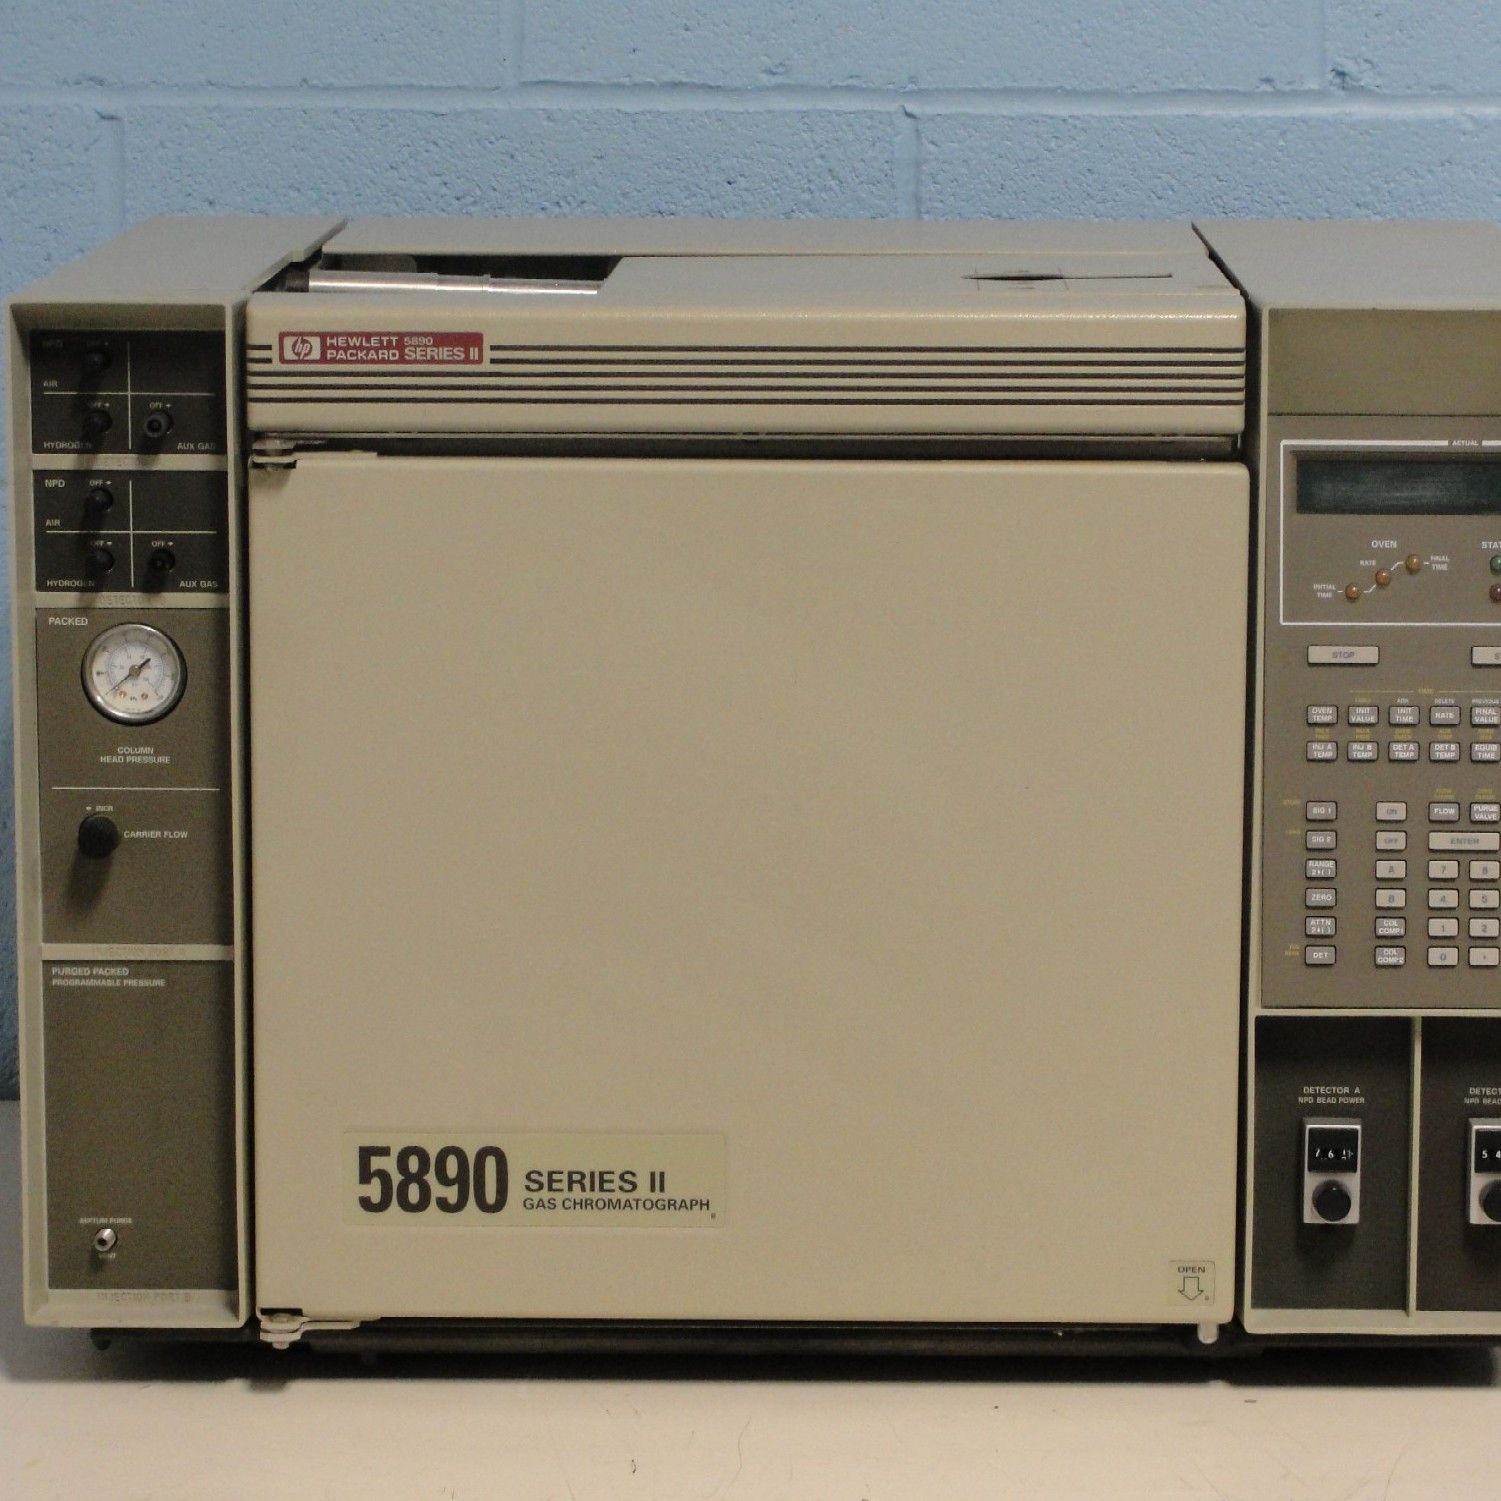 5890 Gas Chromatograph System Name